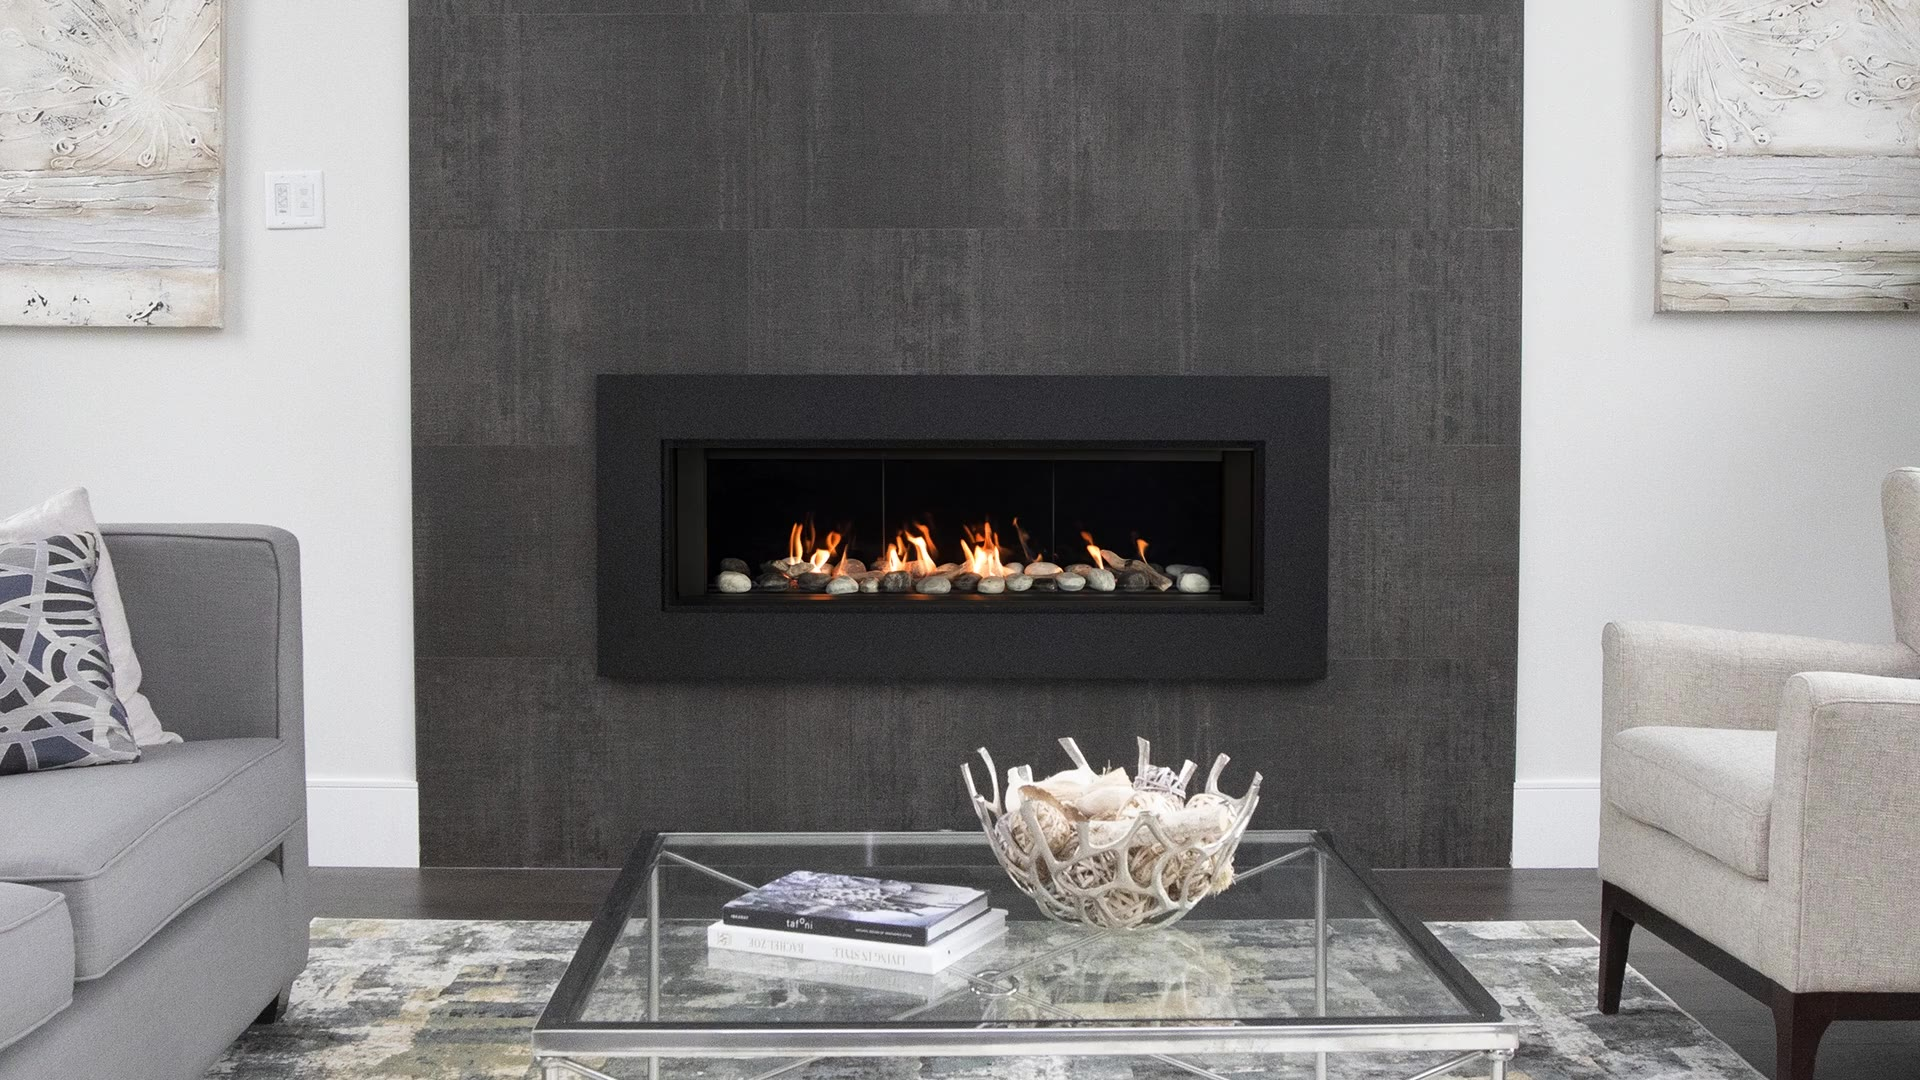 Sensational Valor Gas Fireplaces Propane And Natural Gas Fireplaces Download Free Architecture Designs Terstmadebymaigaardcom